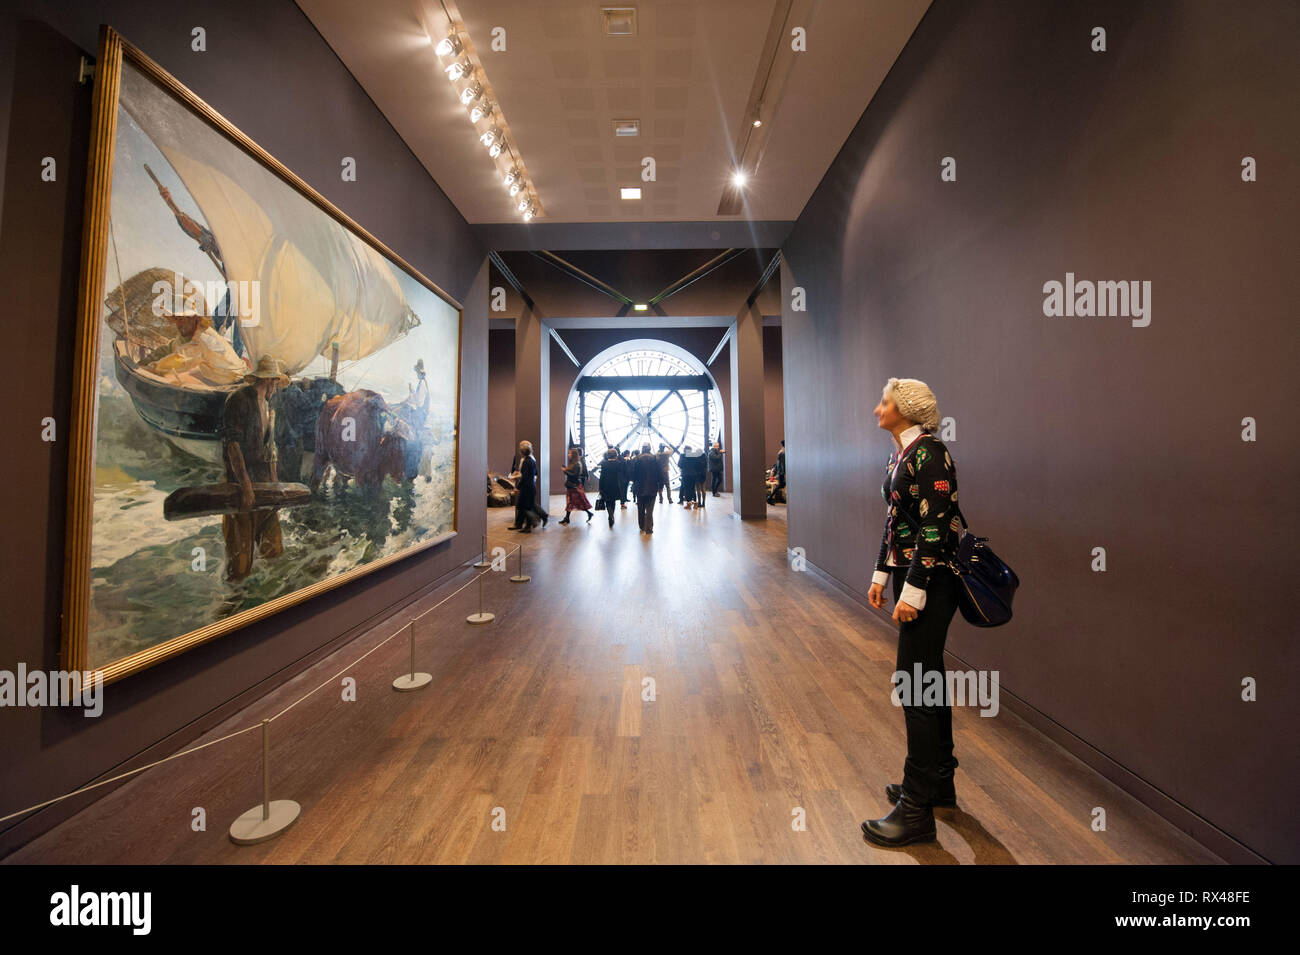 Paris (France): The Musee d'Orsay museum. - Stock Image